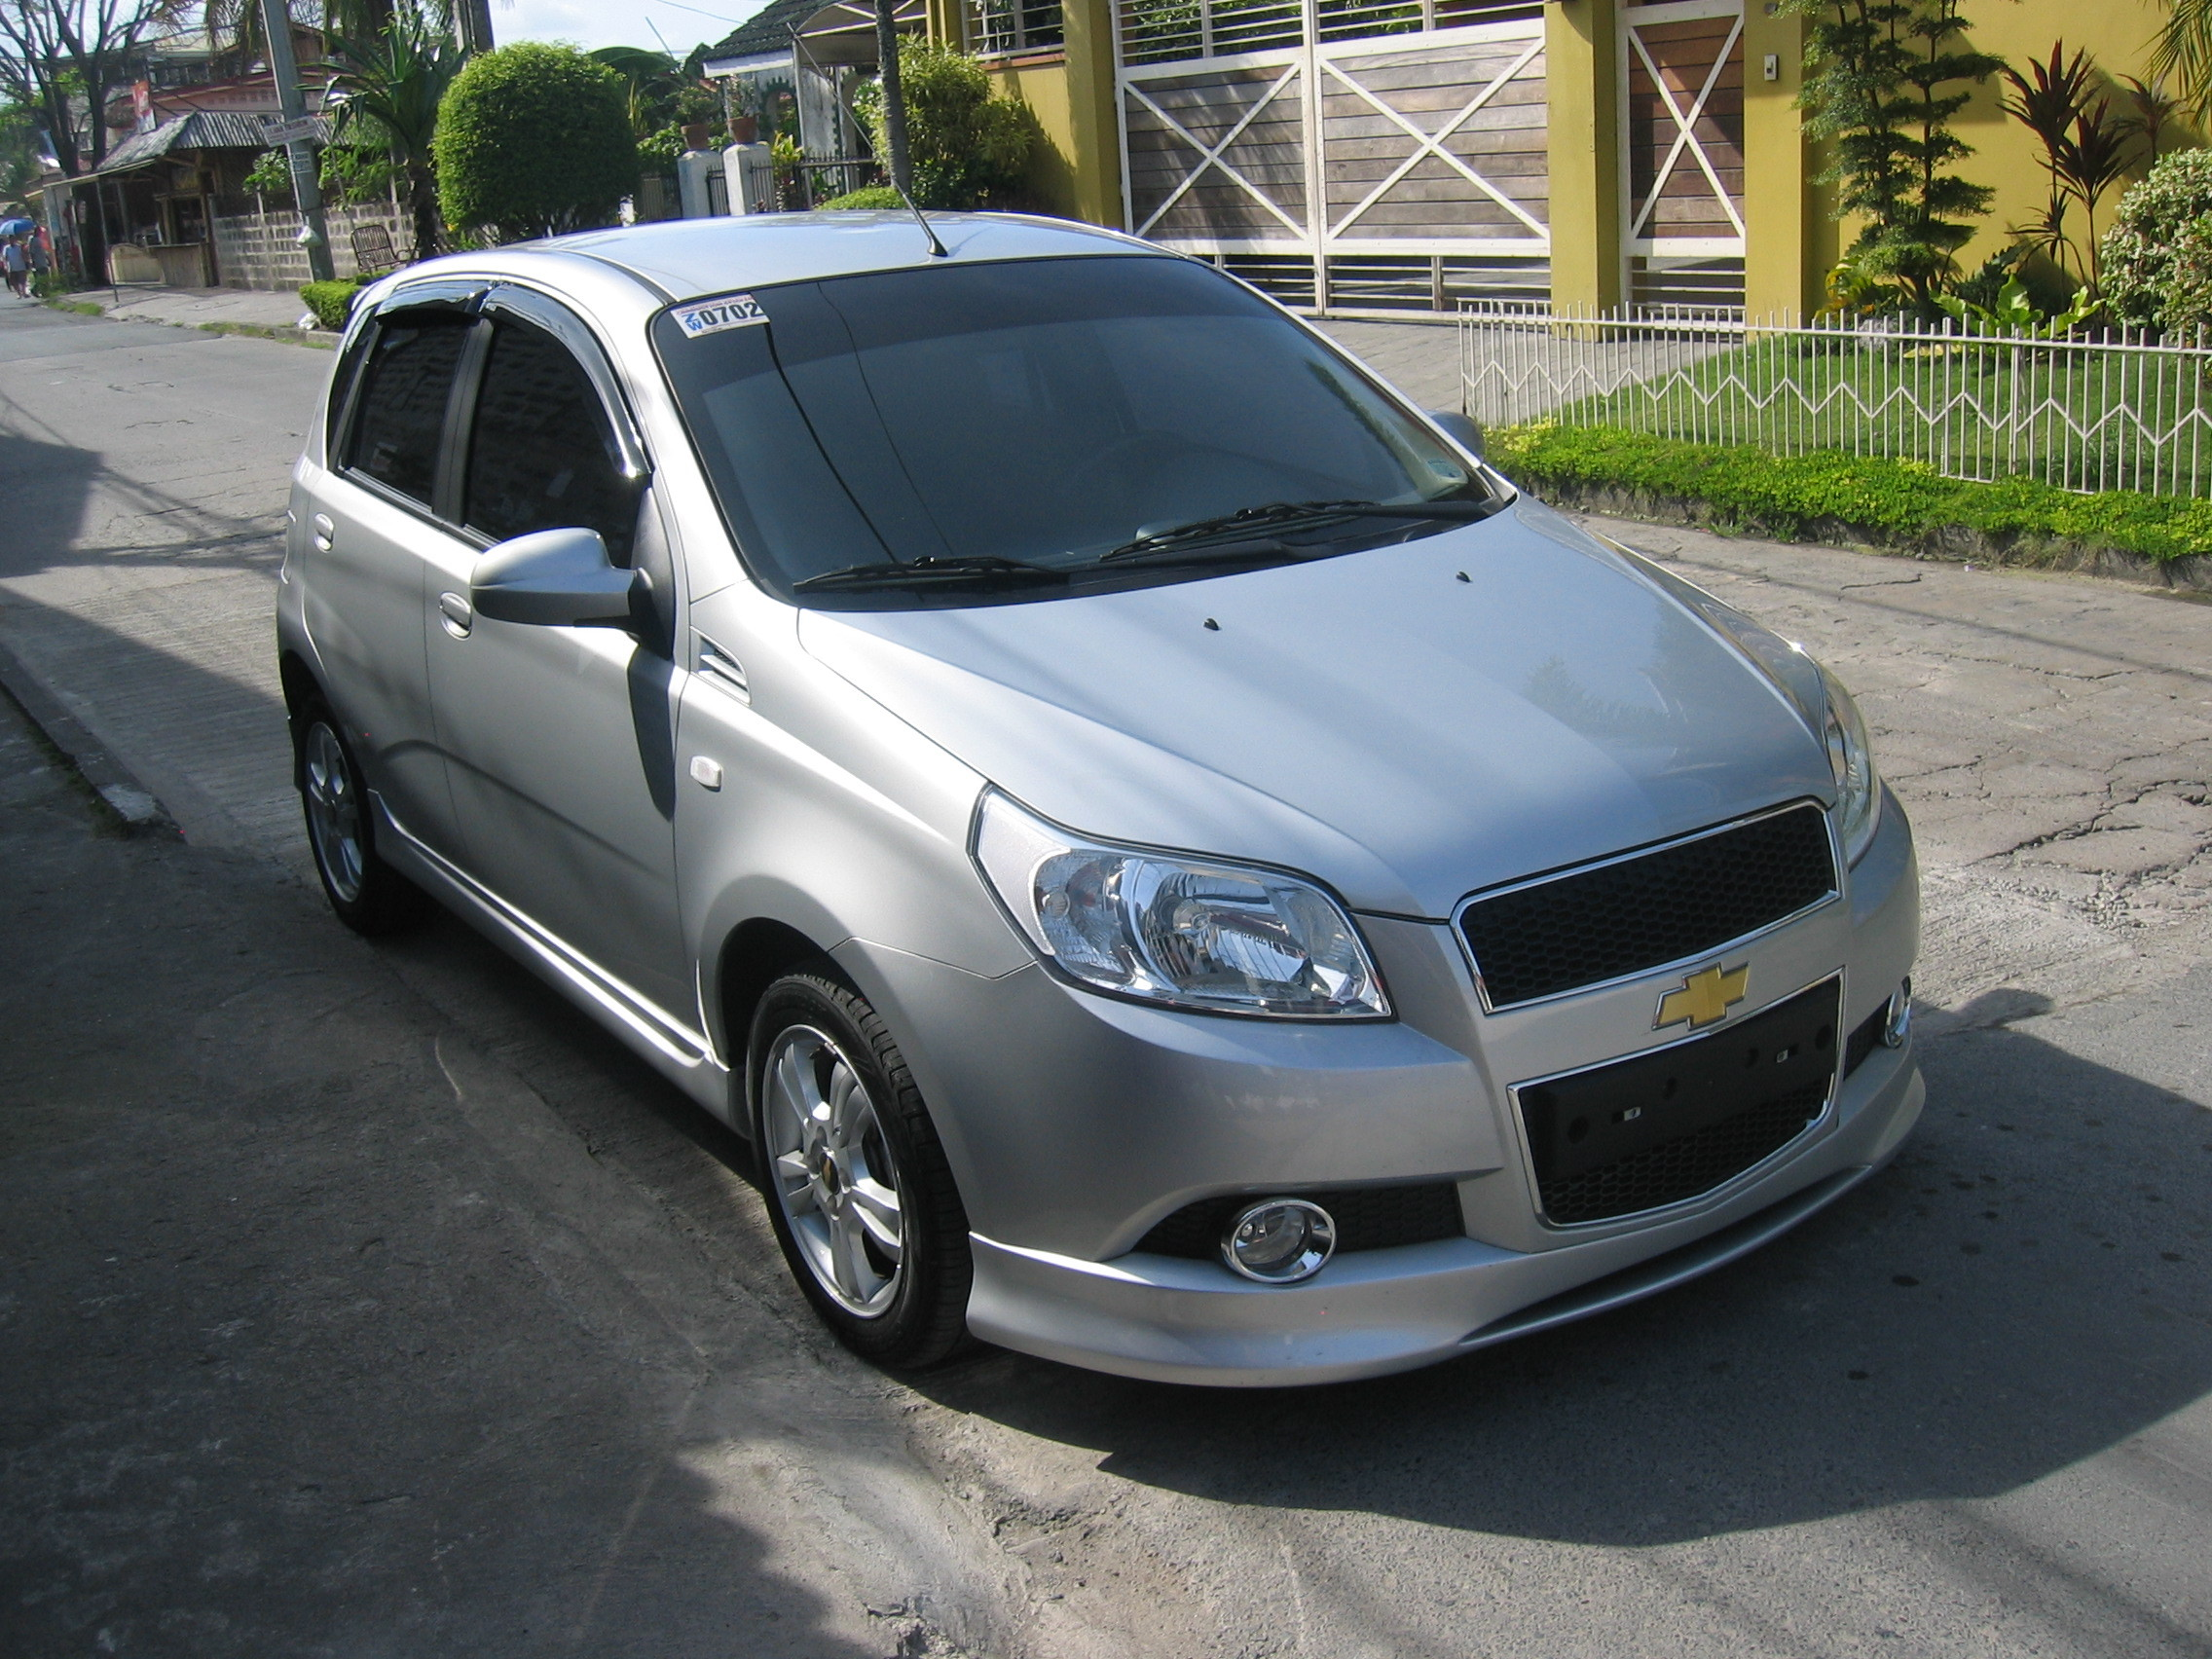 Daxpaolo O2craft 2009 Chevrolet Aveo Specs Photos Modification